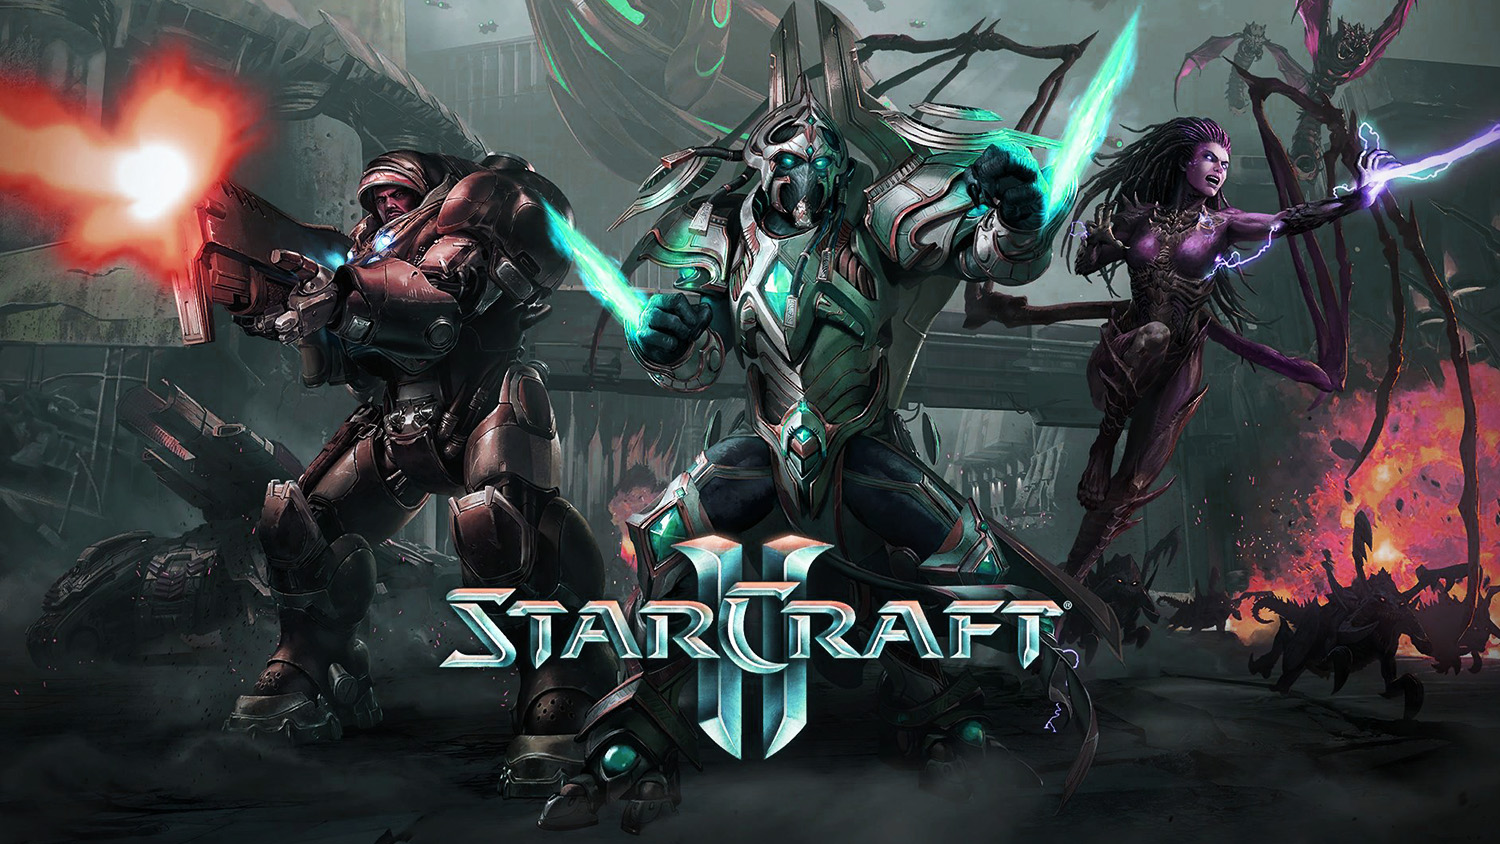 Starcraft 2 Noob Guide – Basic Control Tips